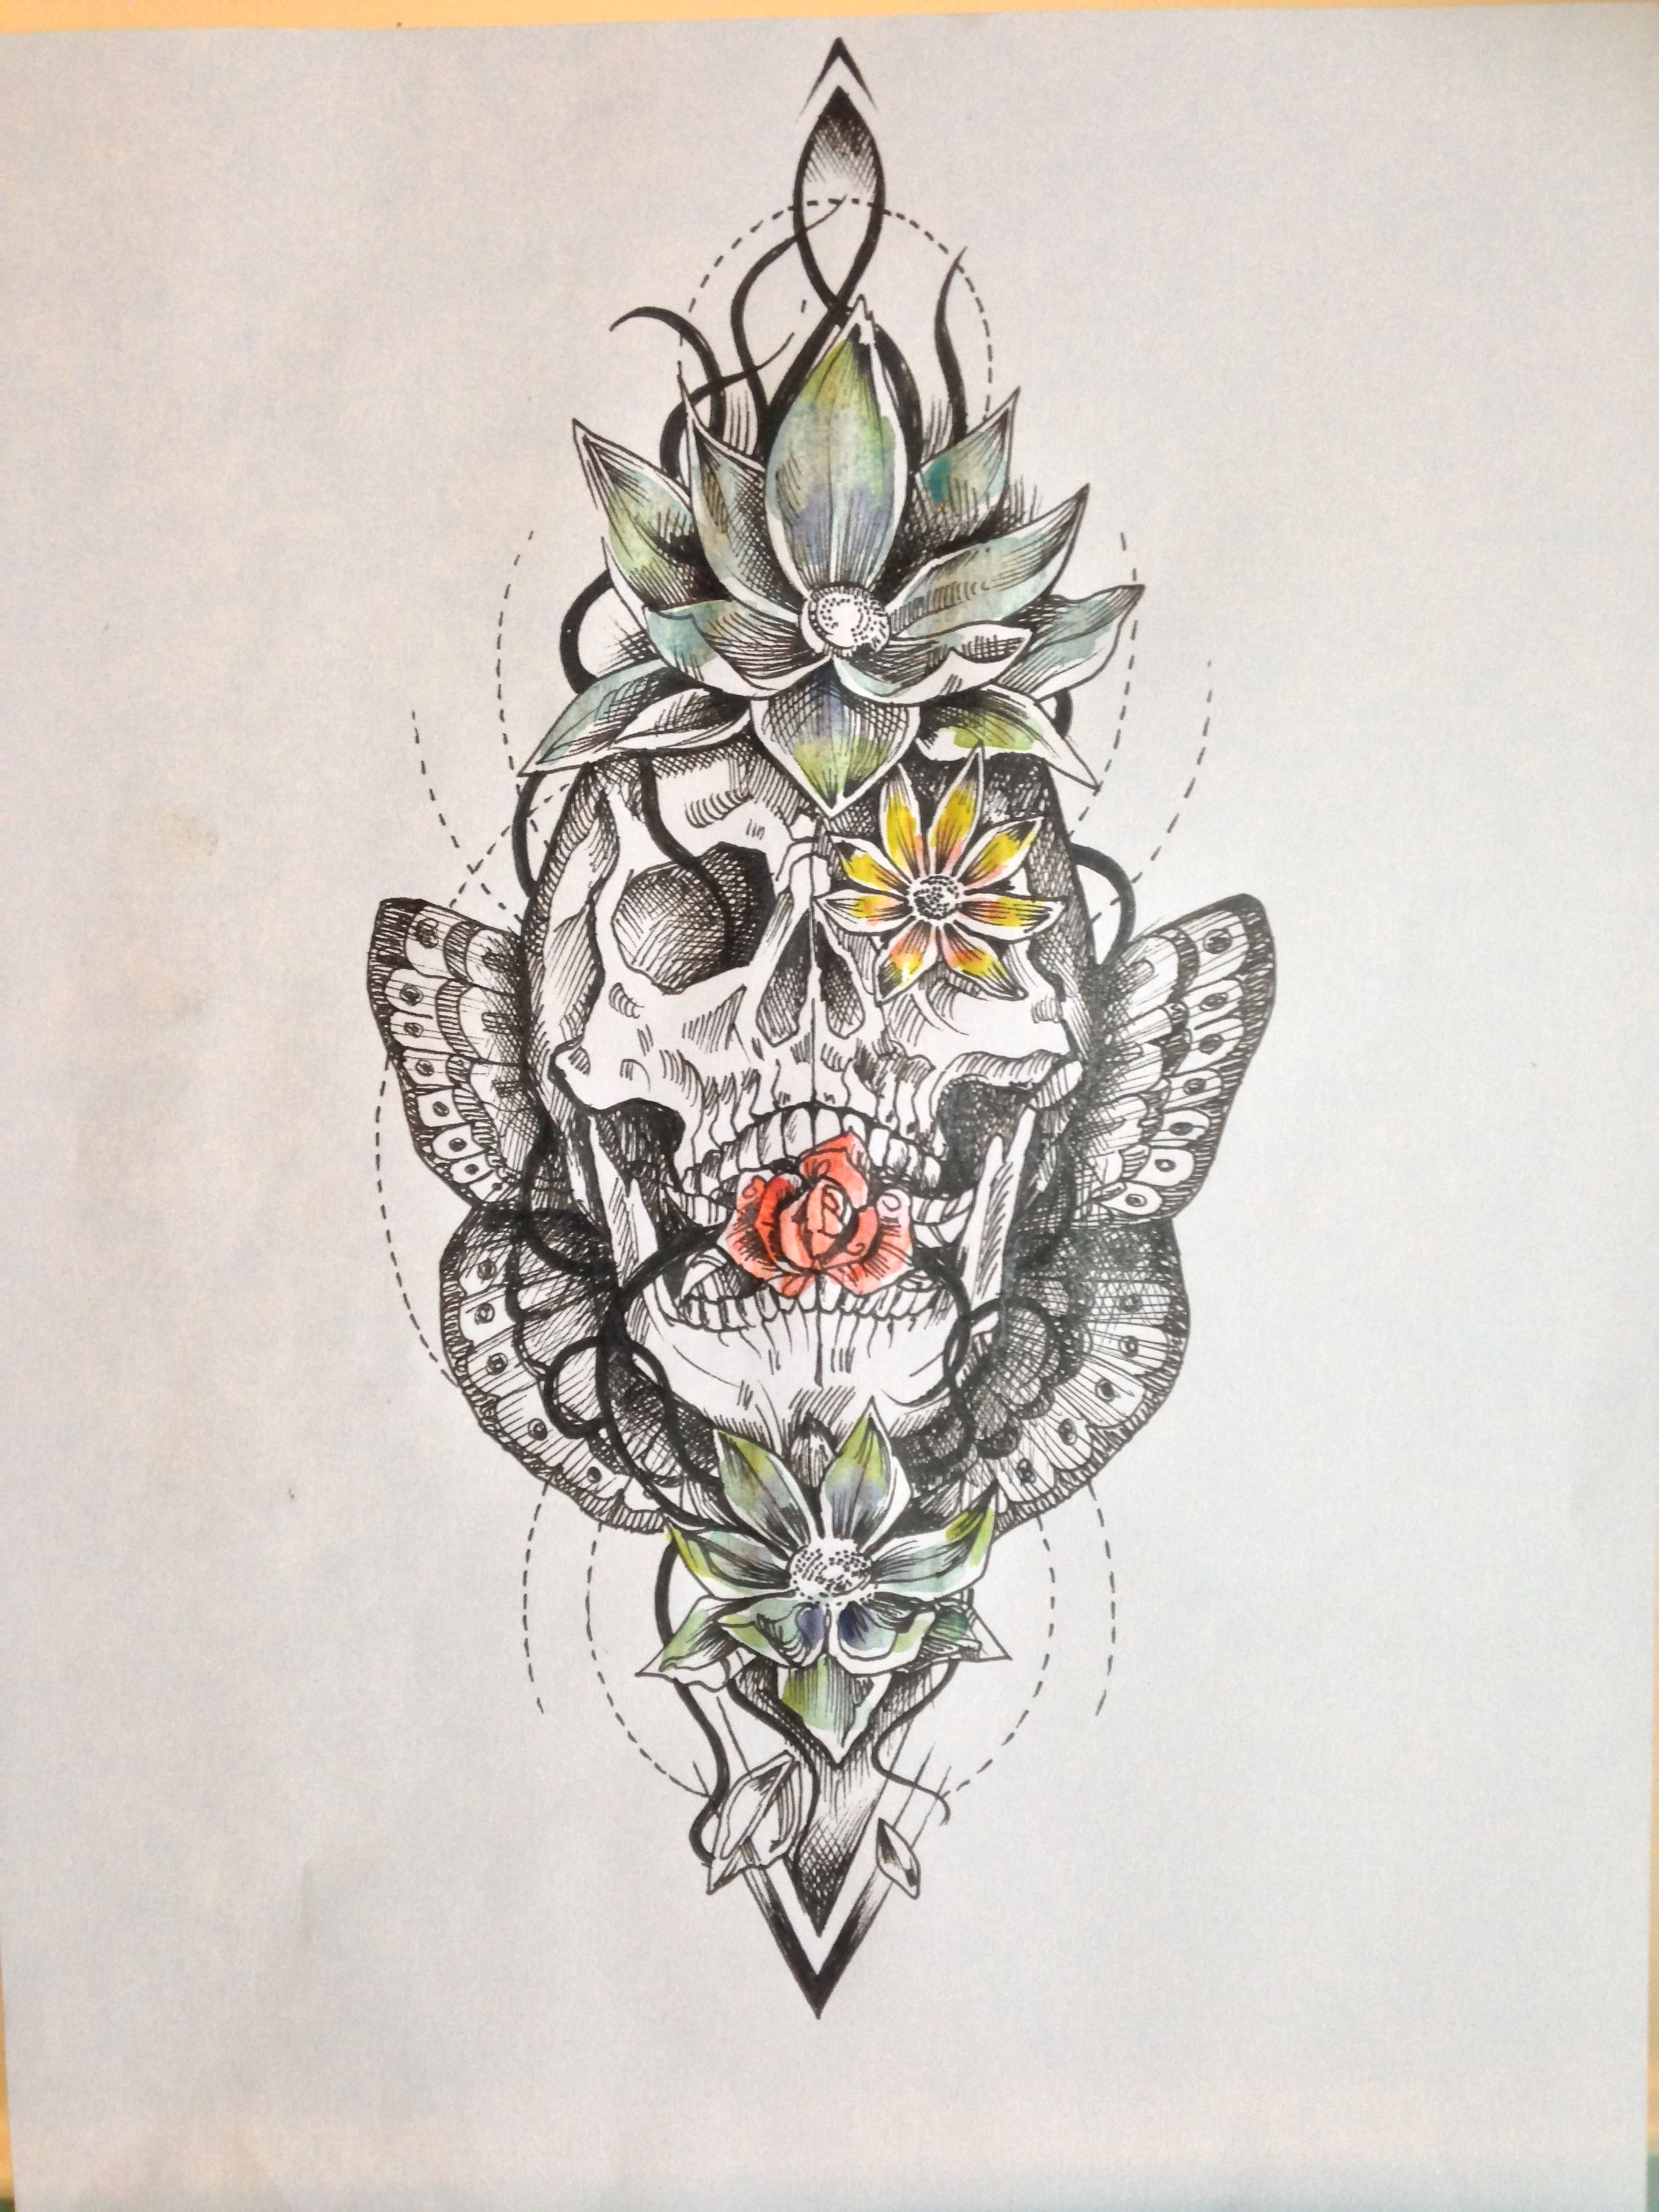 Without the butterfly wings and with cactus and cactus flowers #cactuswithflowers